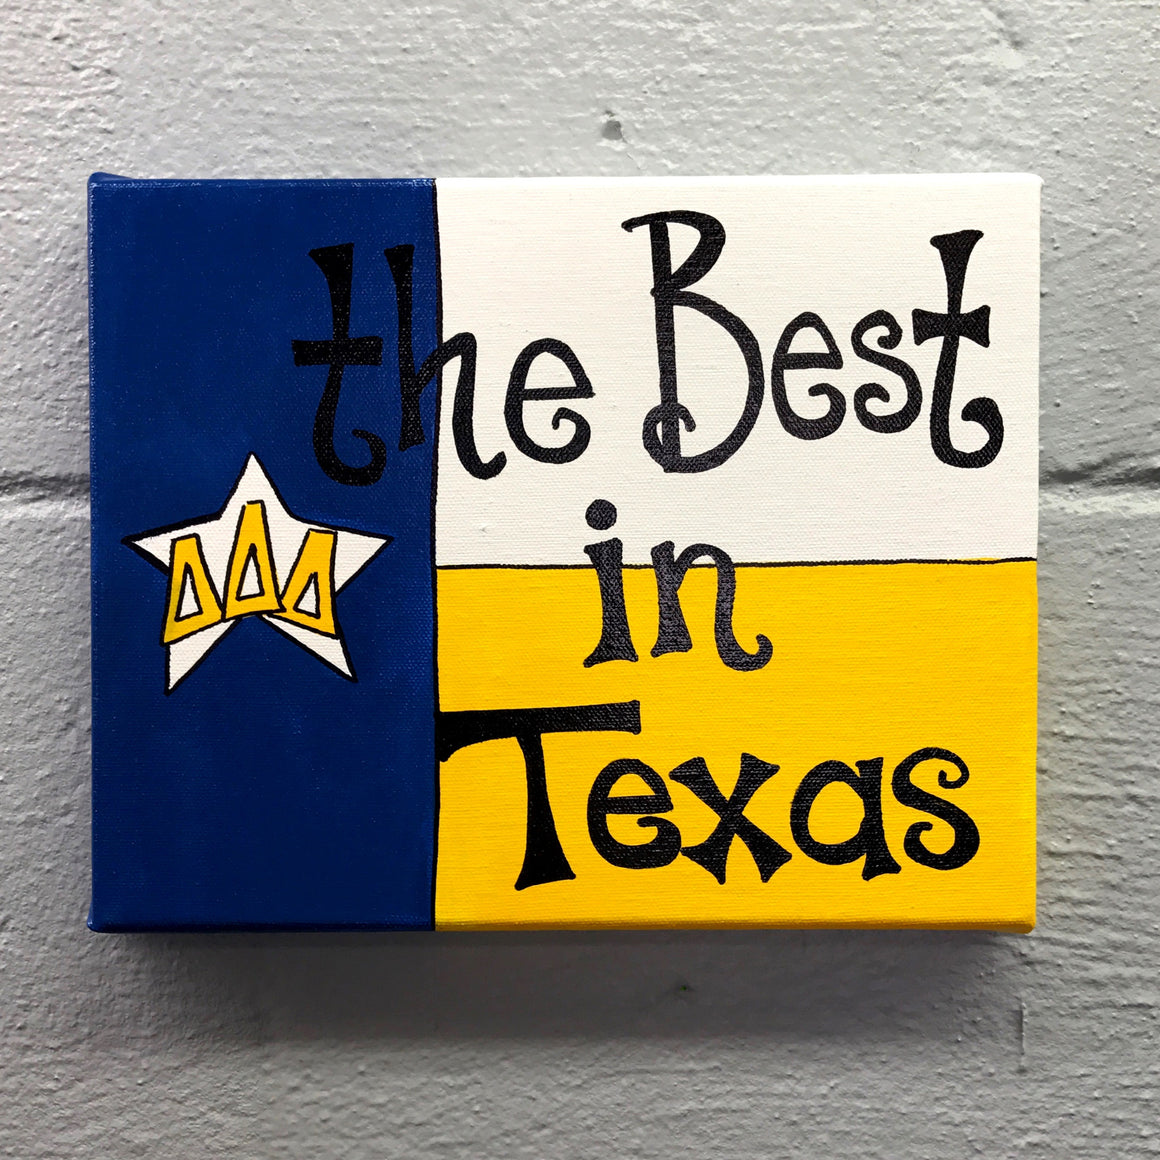 Best in Texas - Delta Delta Delta